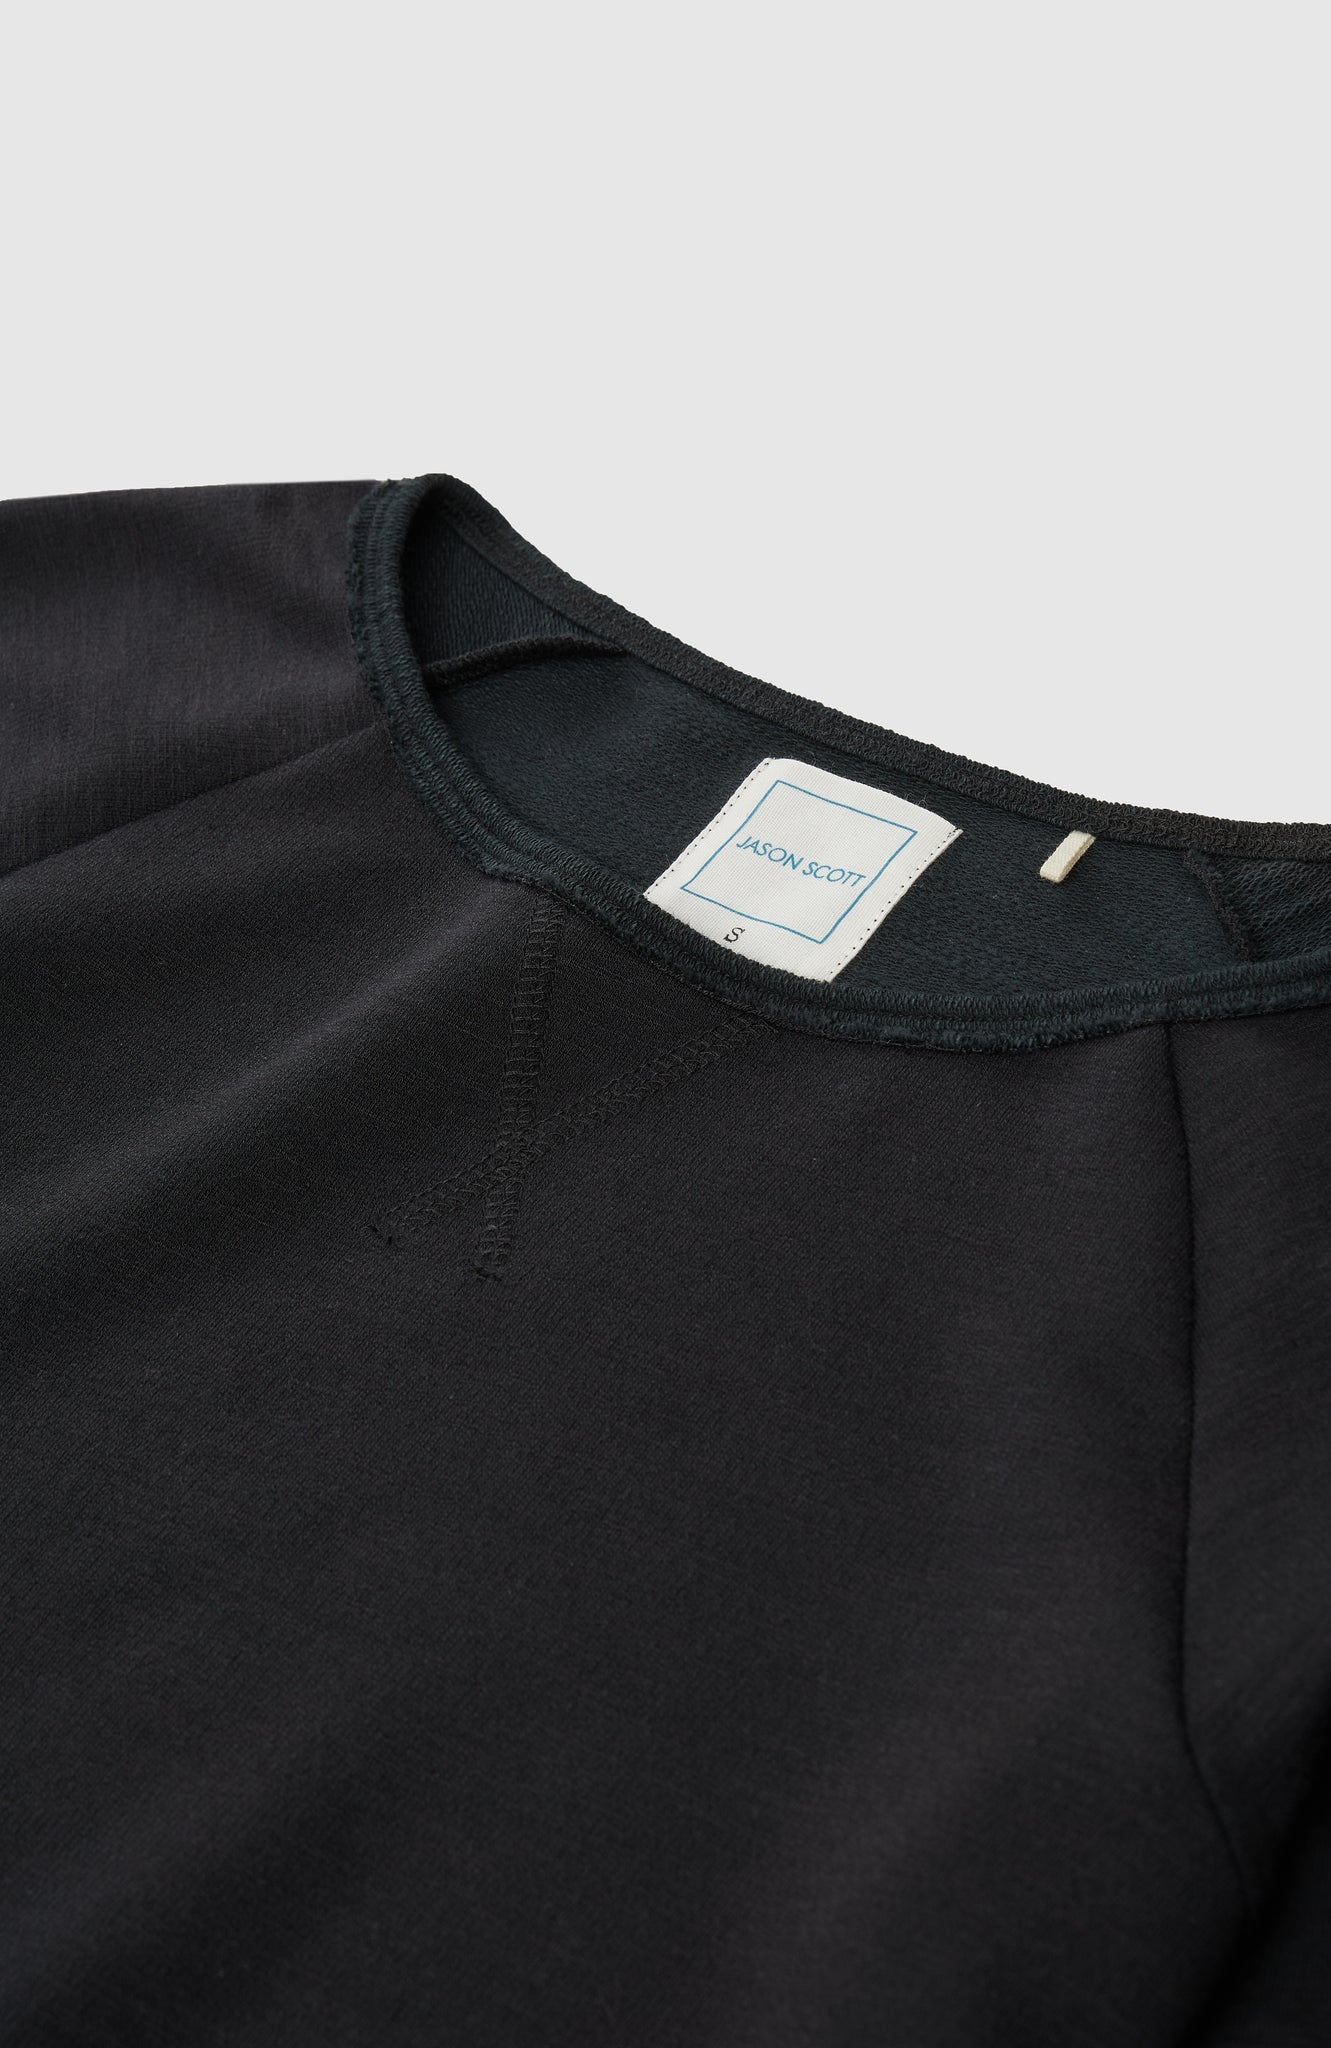 Wide Neck Sweatshirt - Black